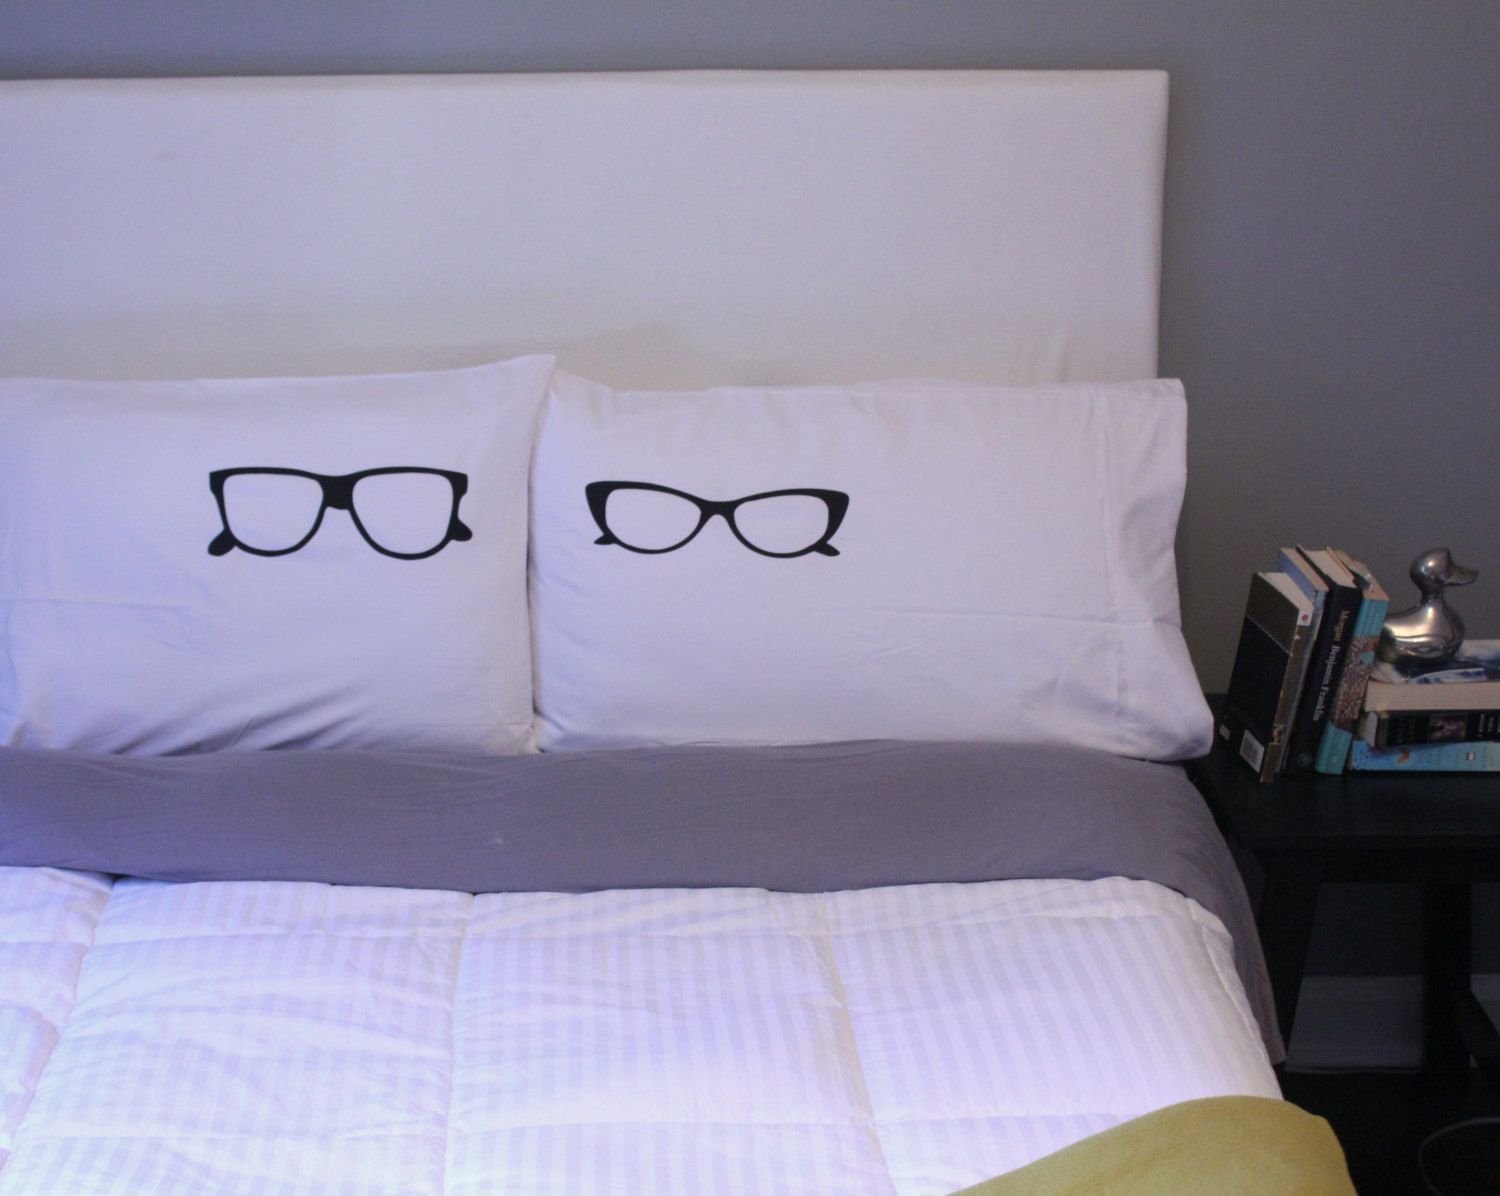 Uncategorized Unique Pillowcases hisandherspillowscoolpillowcasesglassesbyosusannahs his and hers pillows cool pillow cases glasses unique case set love cases